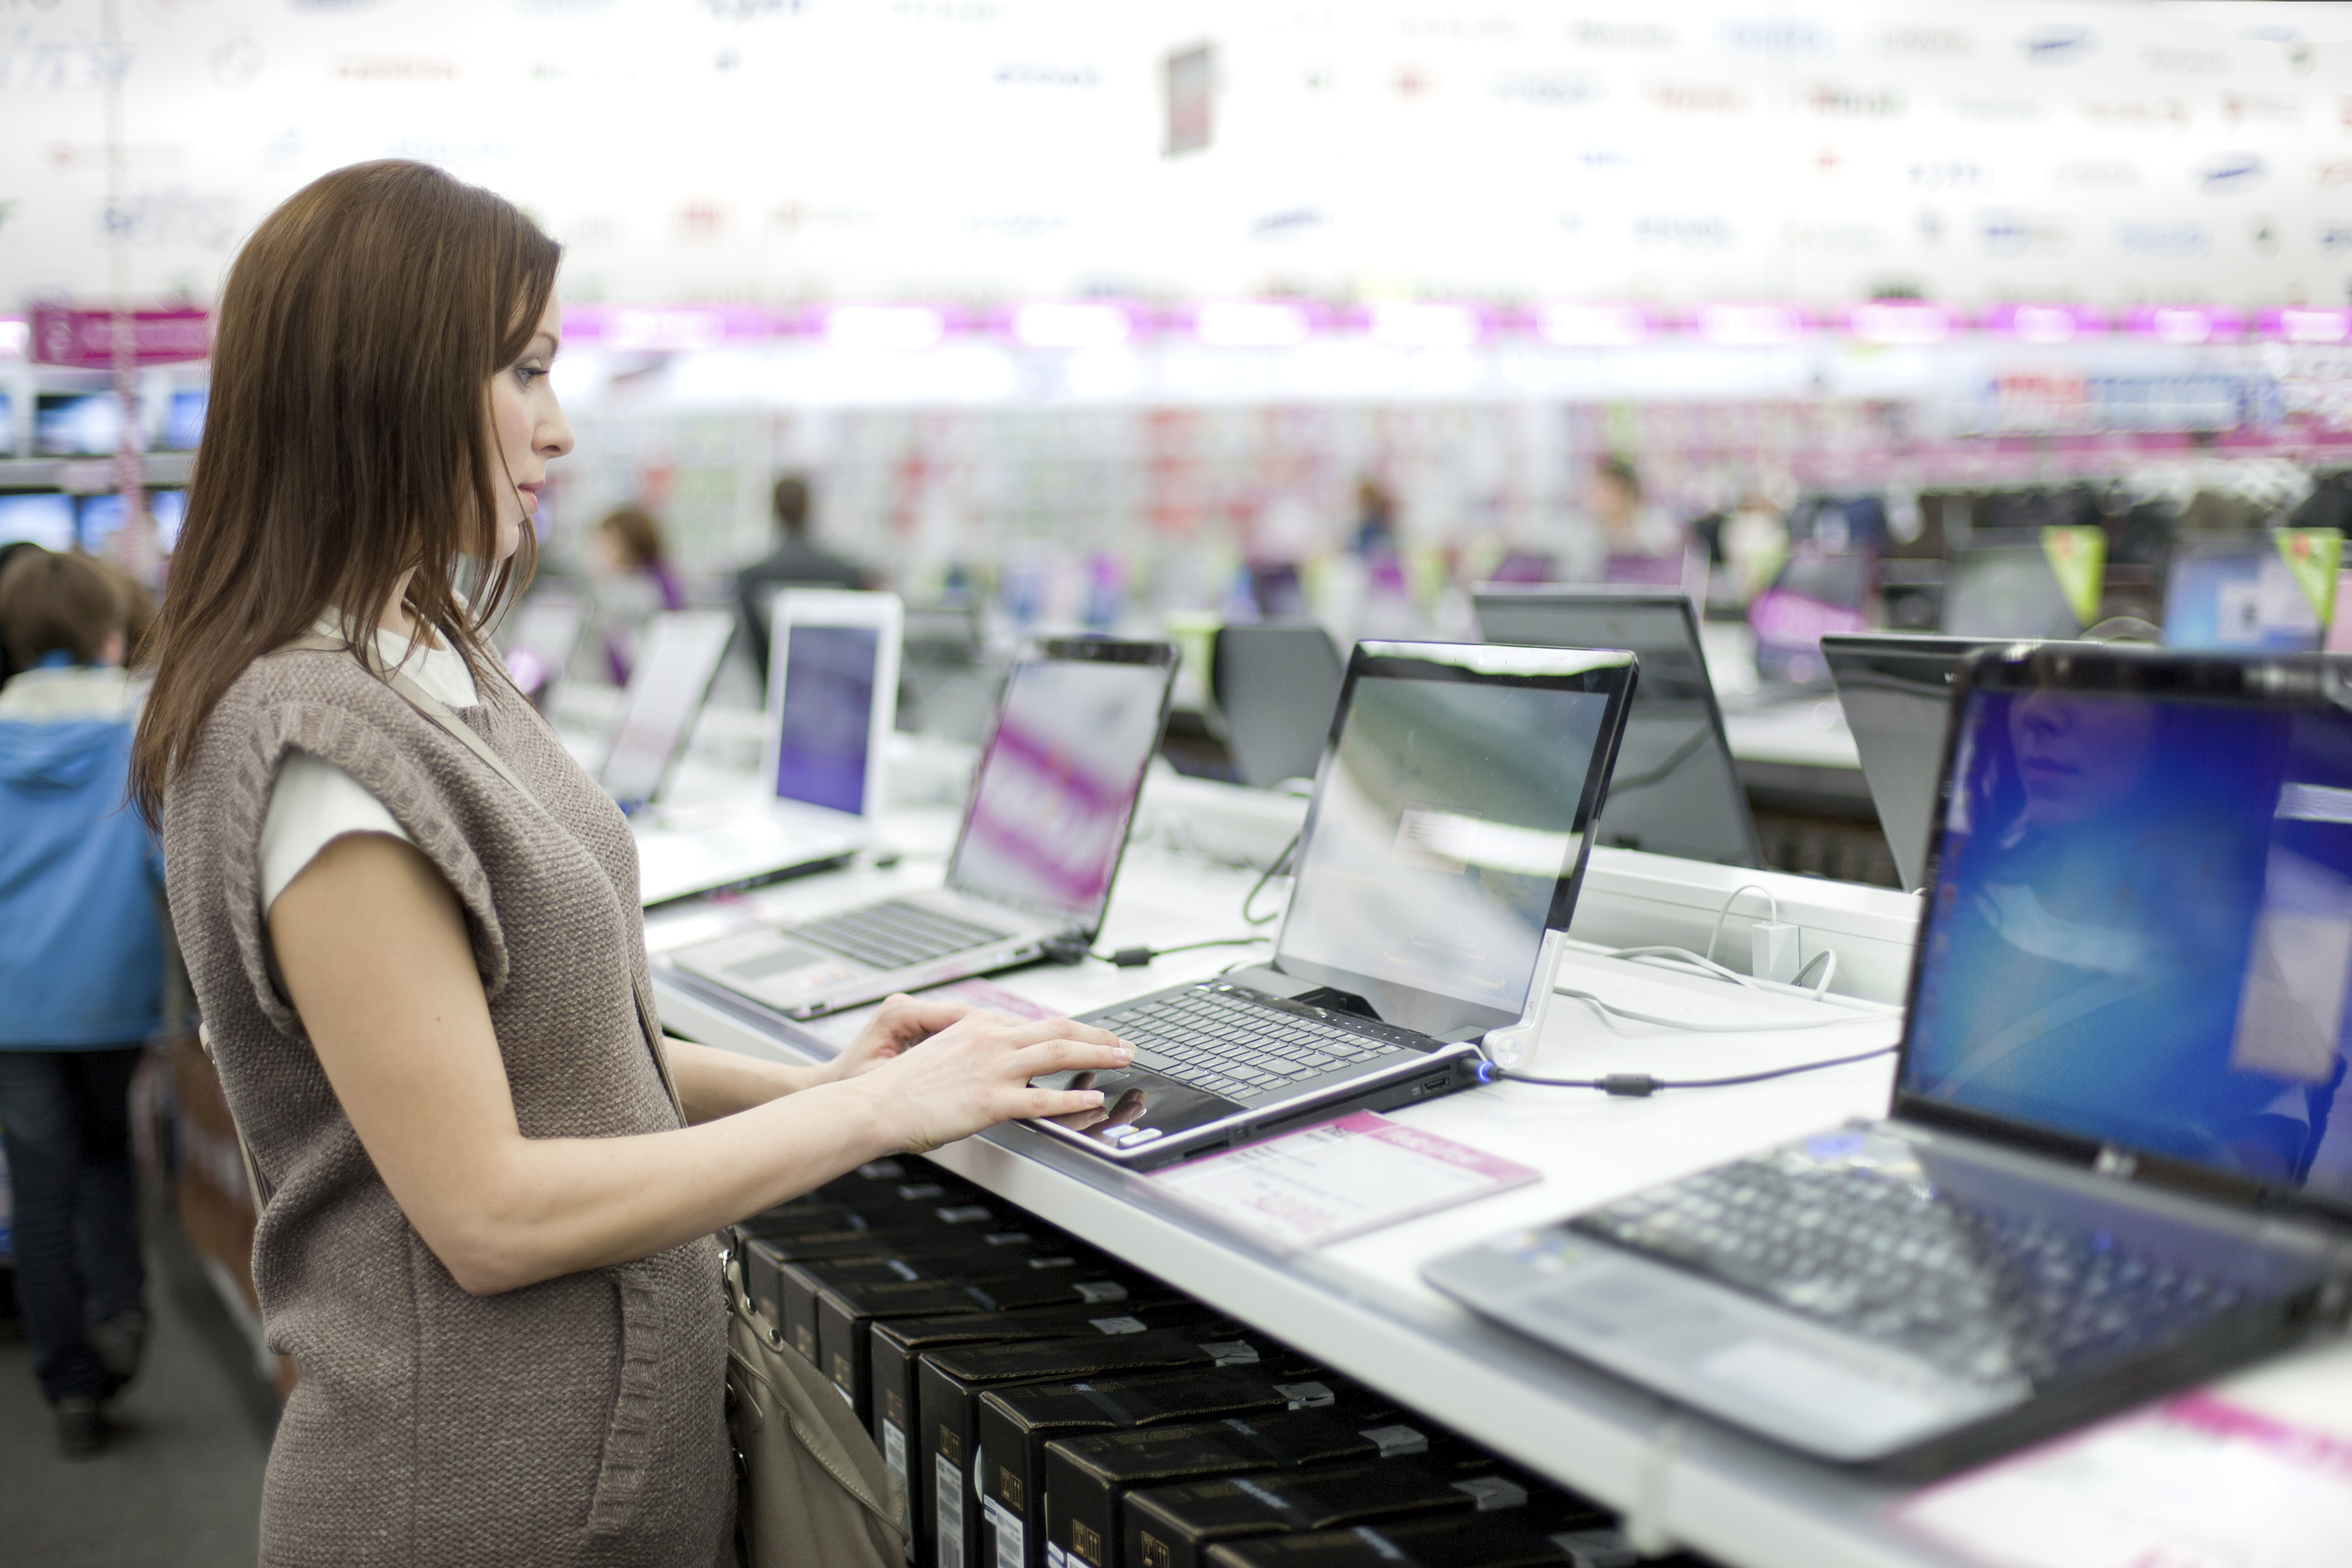 Best Laptops for High Performance Computing